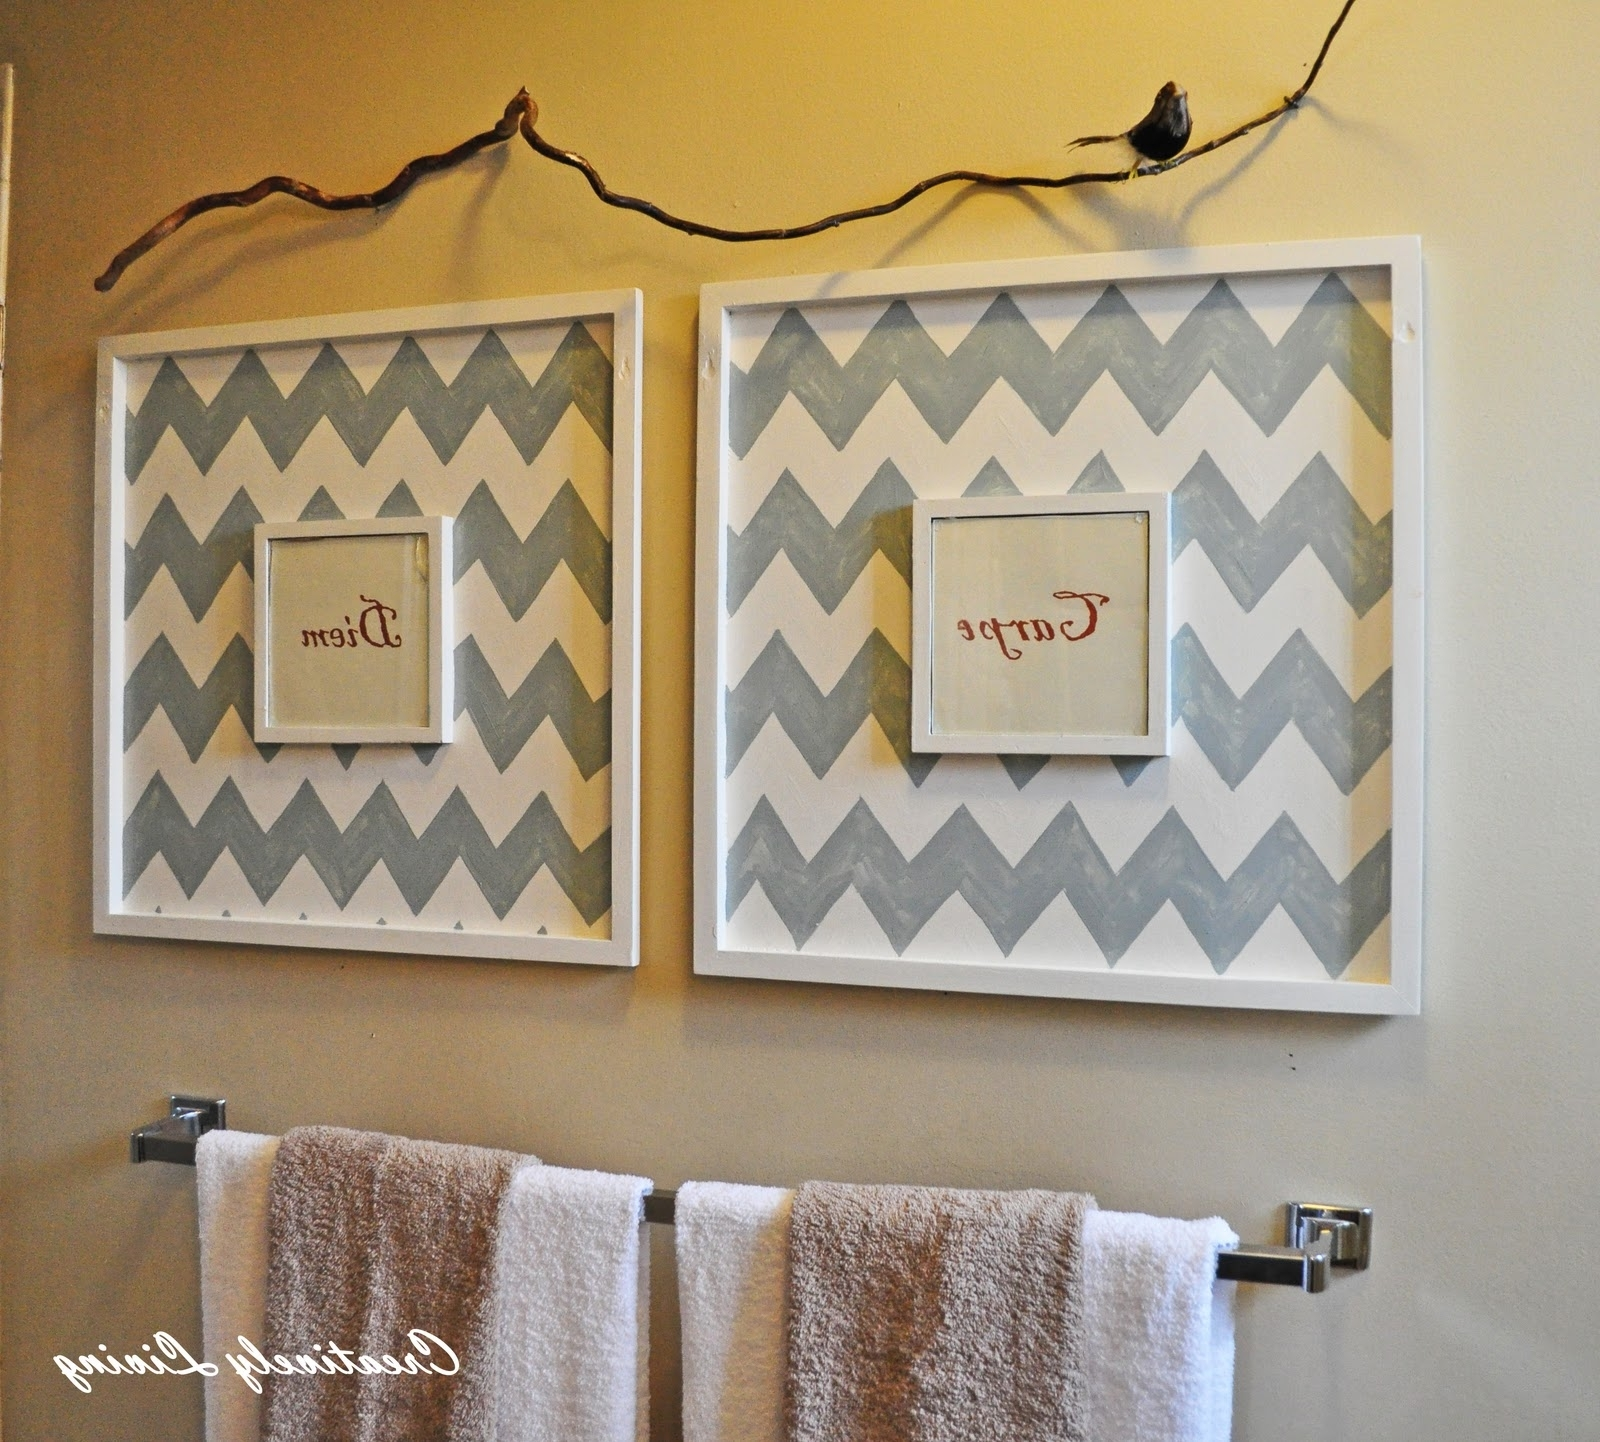 Bathroom Wall Art, Walls And Frames Ideas With Regard To Current Wall Art For The Bathroom (View 5 of 15)